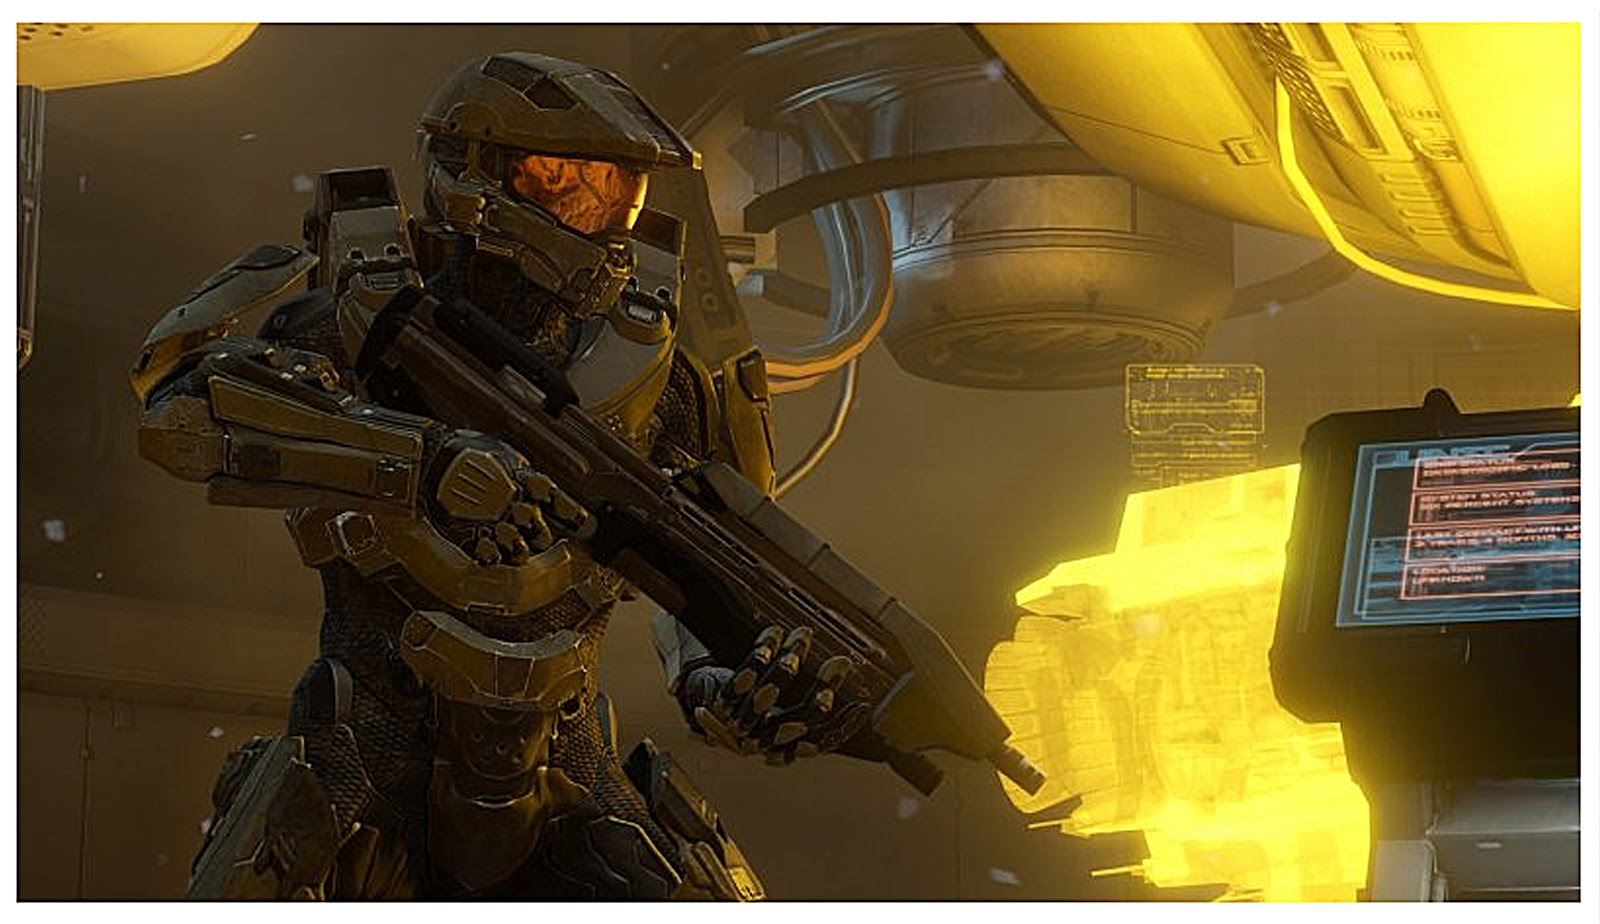 Halo Spartan Assault wallpapers from the concept art and  - halo spartan assault game wallpapers